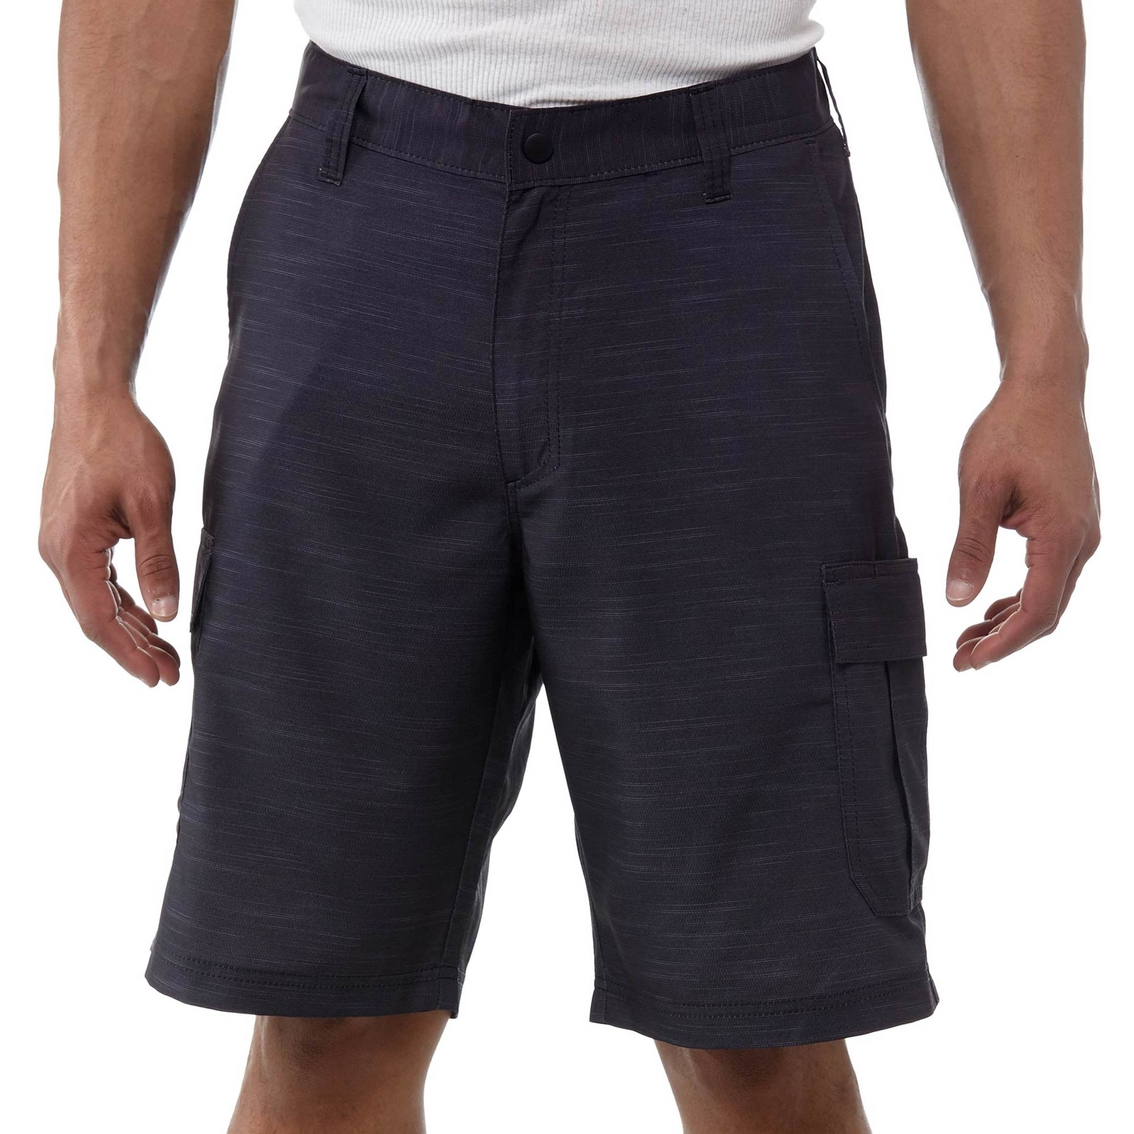 c29347a57d Lee Dungarees Performance Cargo Shorts | Shorts | Father's Day Shop ...